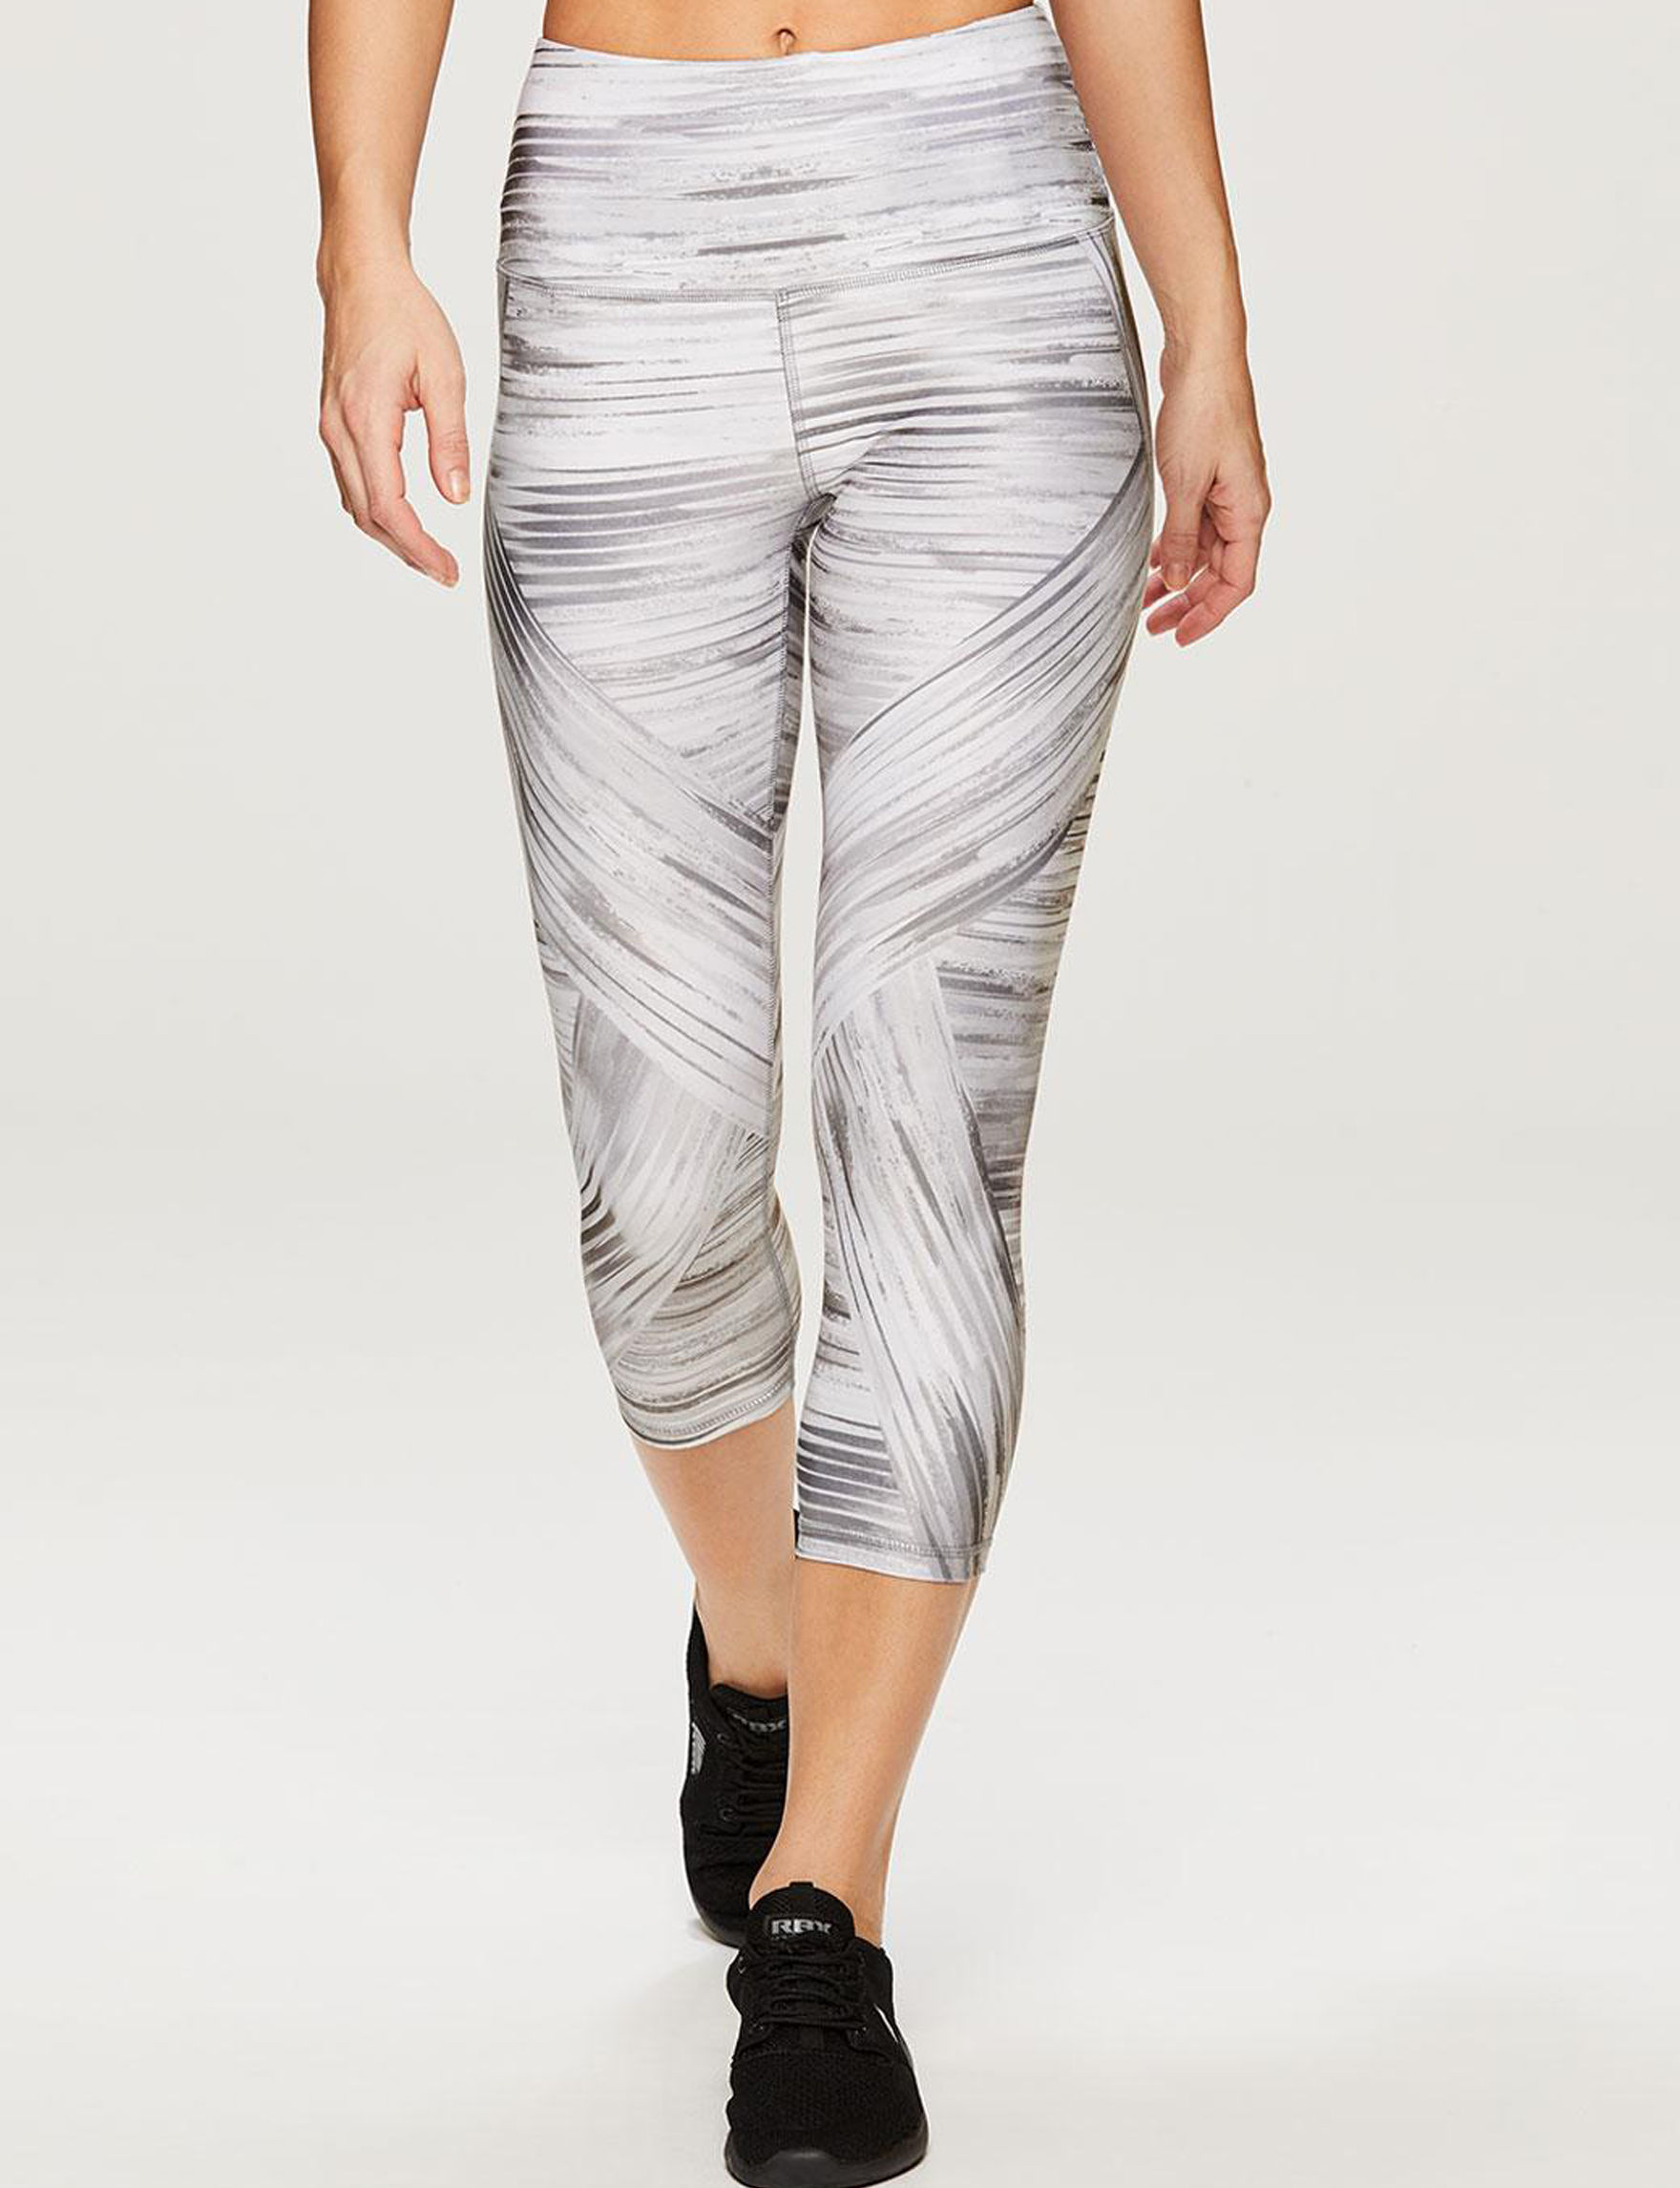 RBX Grey / White Active Capris & Crops